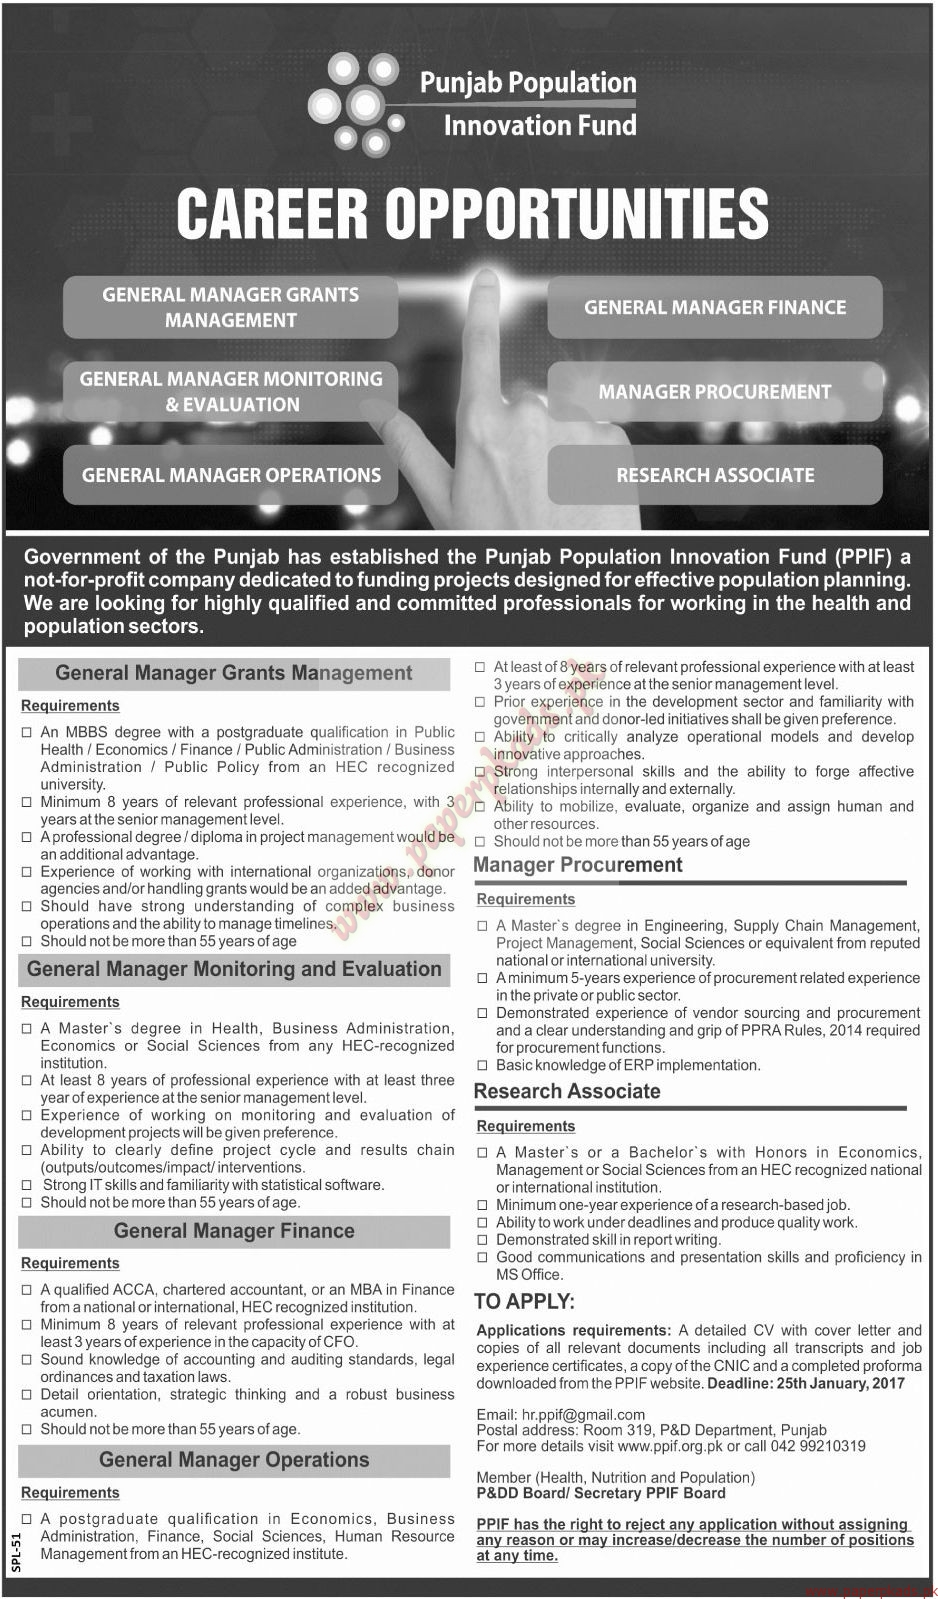 Punjab Population Innovation Fund Jobs